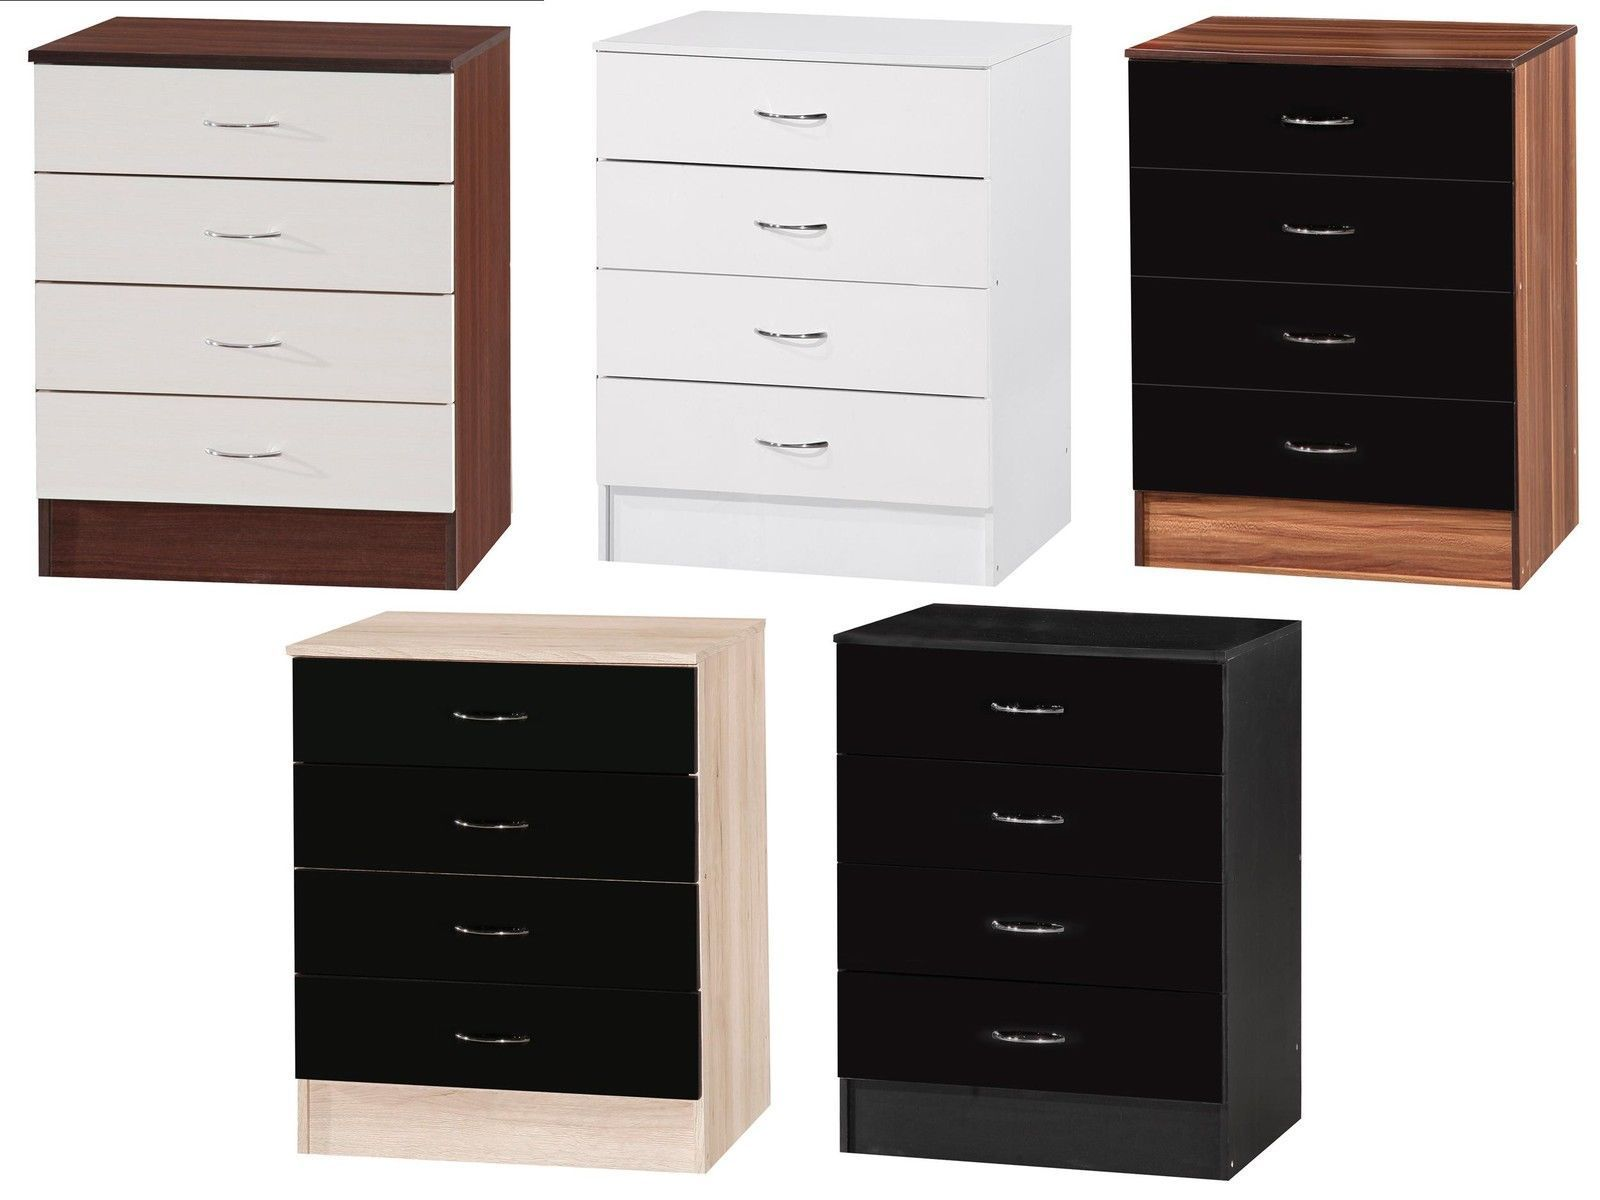 Alpha high gloss chest of drawers black walnut white oak bedroom furniture ebay for White bedroom chest of drawers